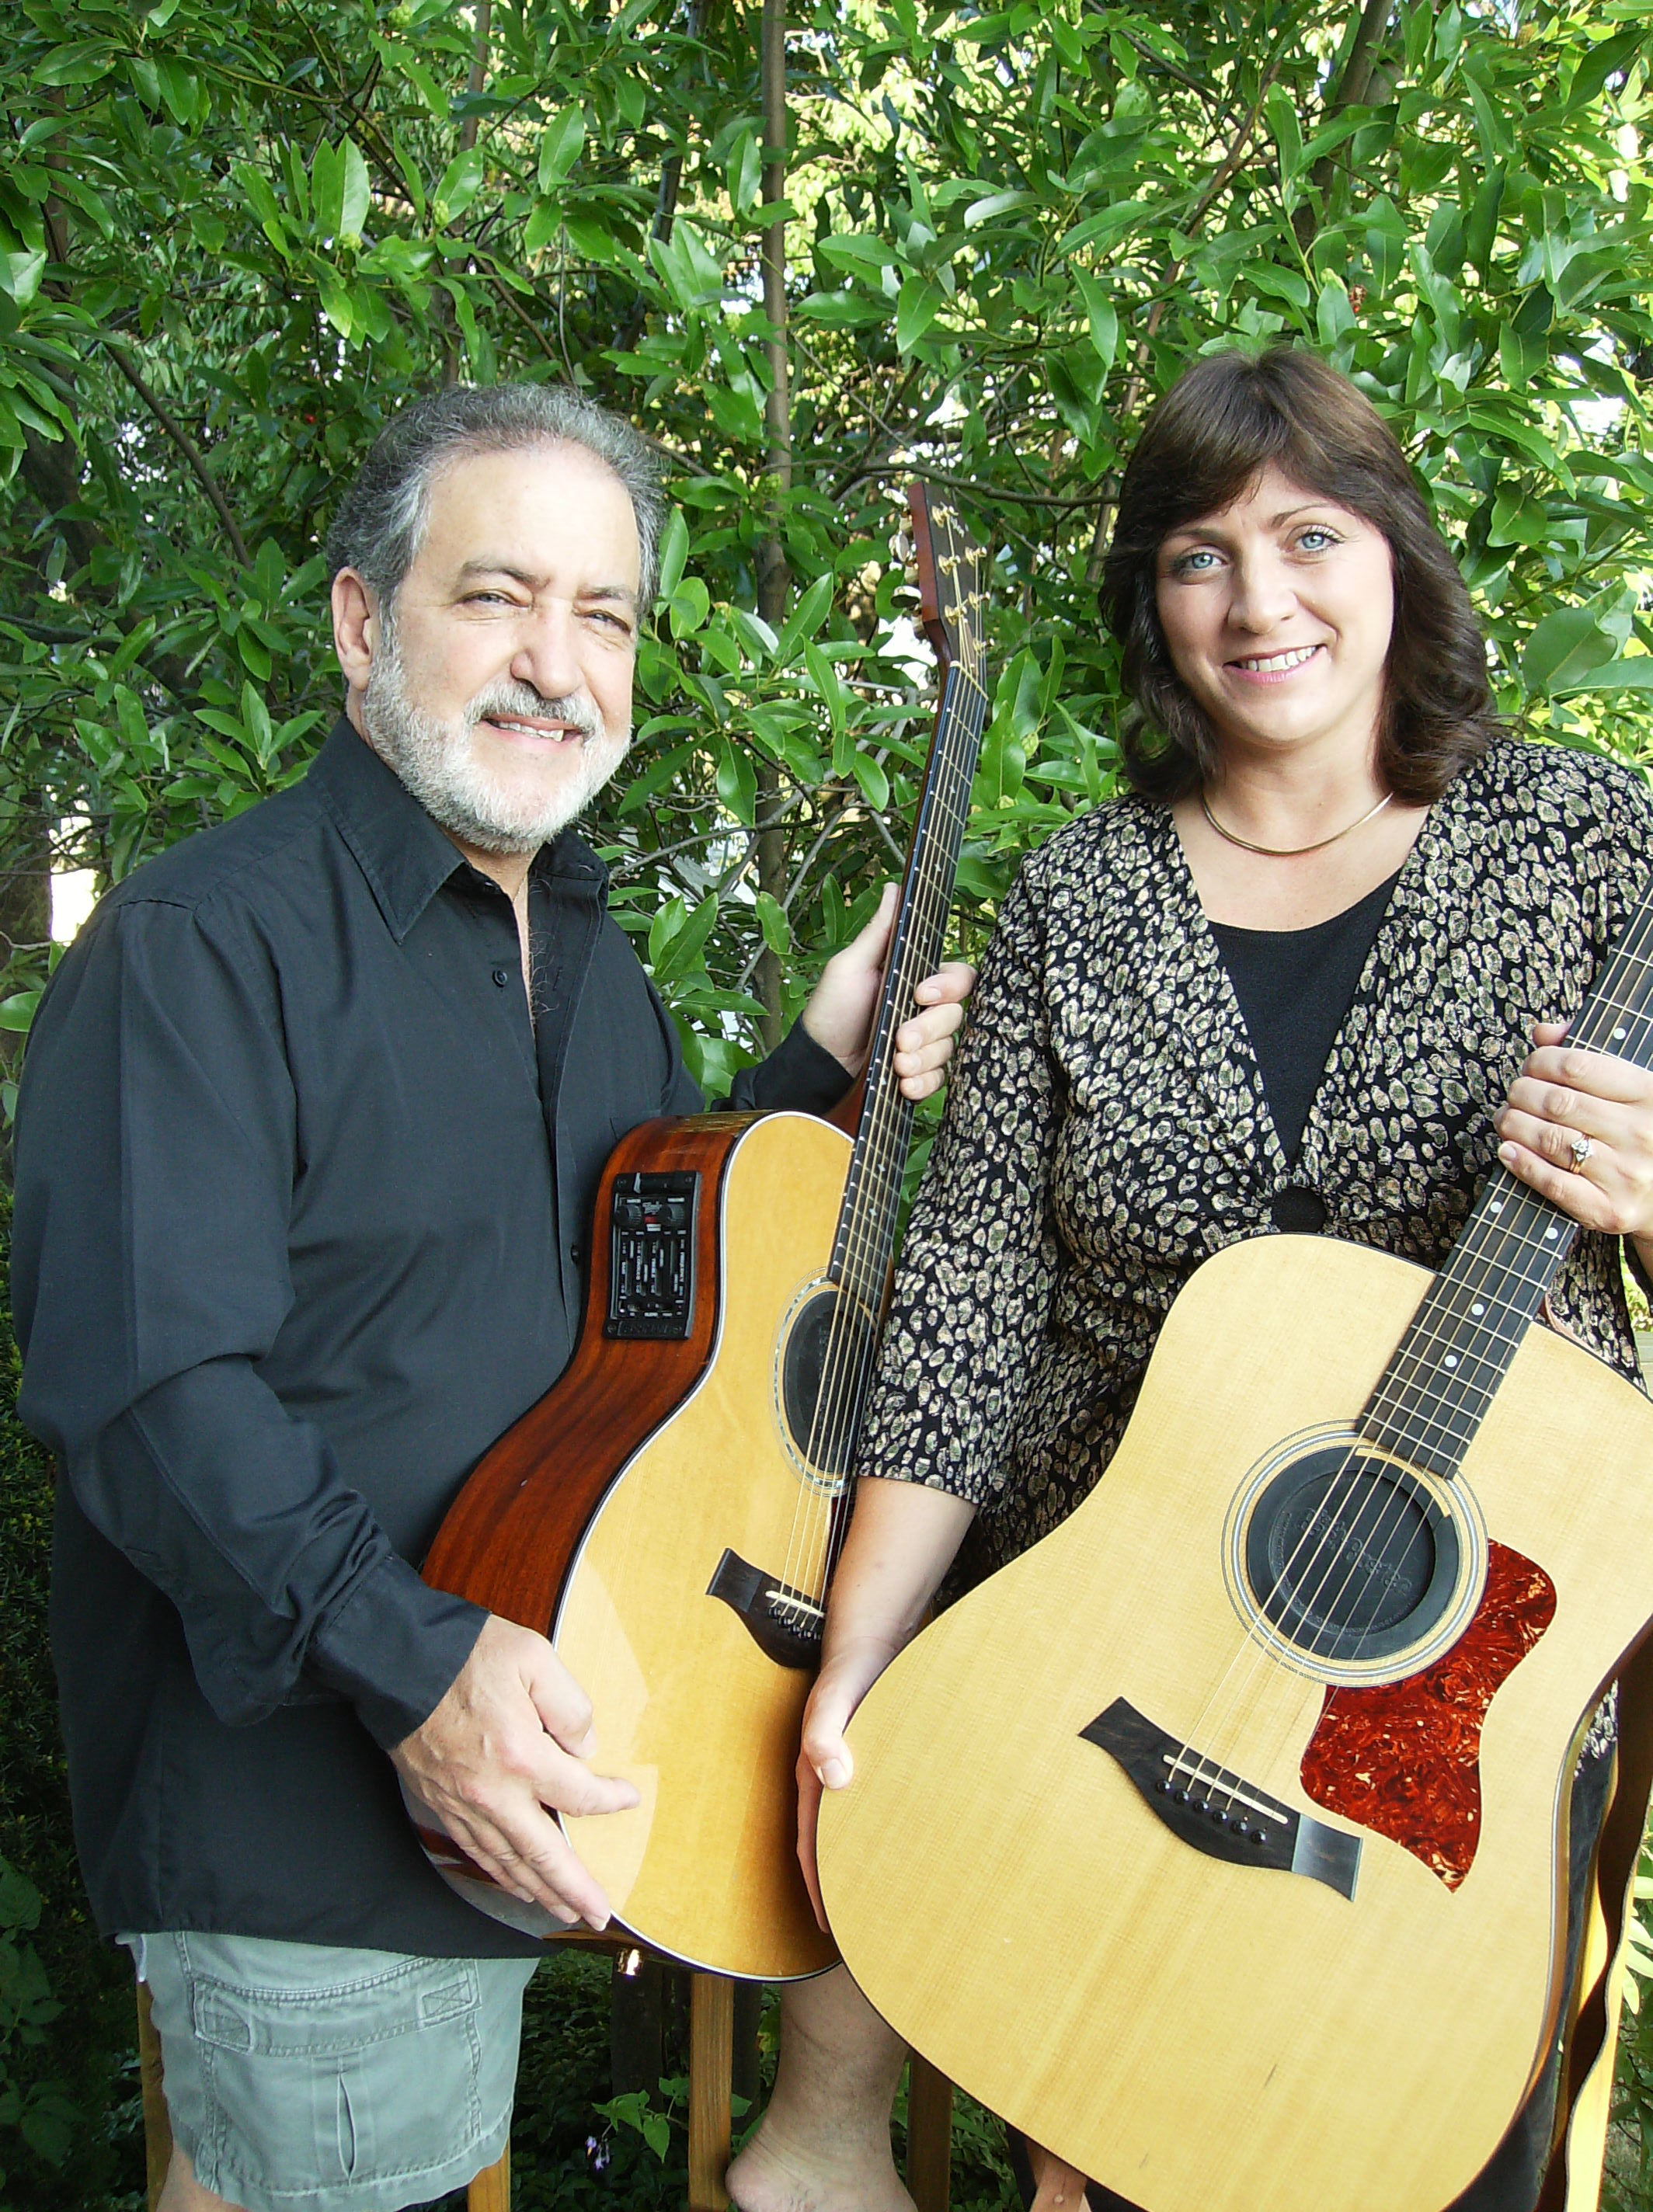 A man and woman posing with acoustic guitars